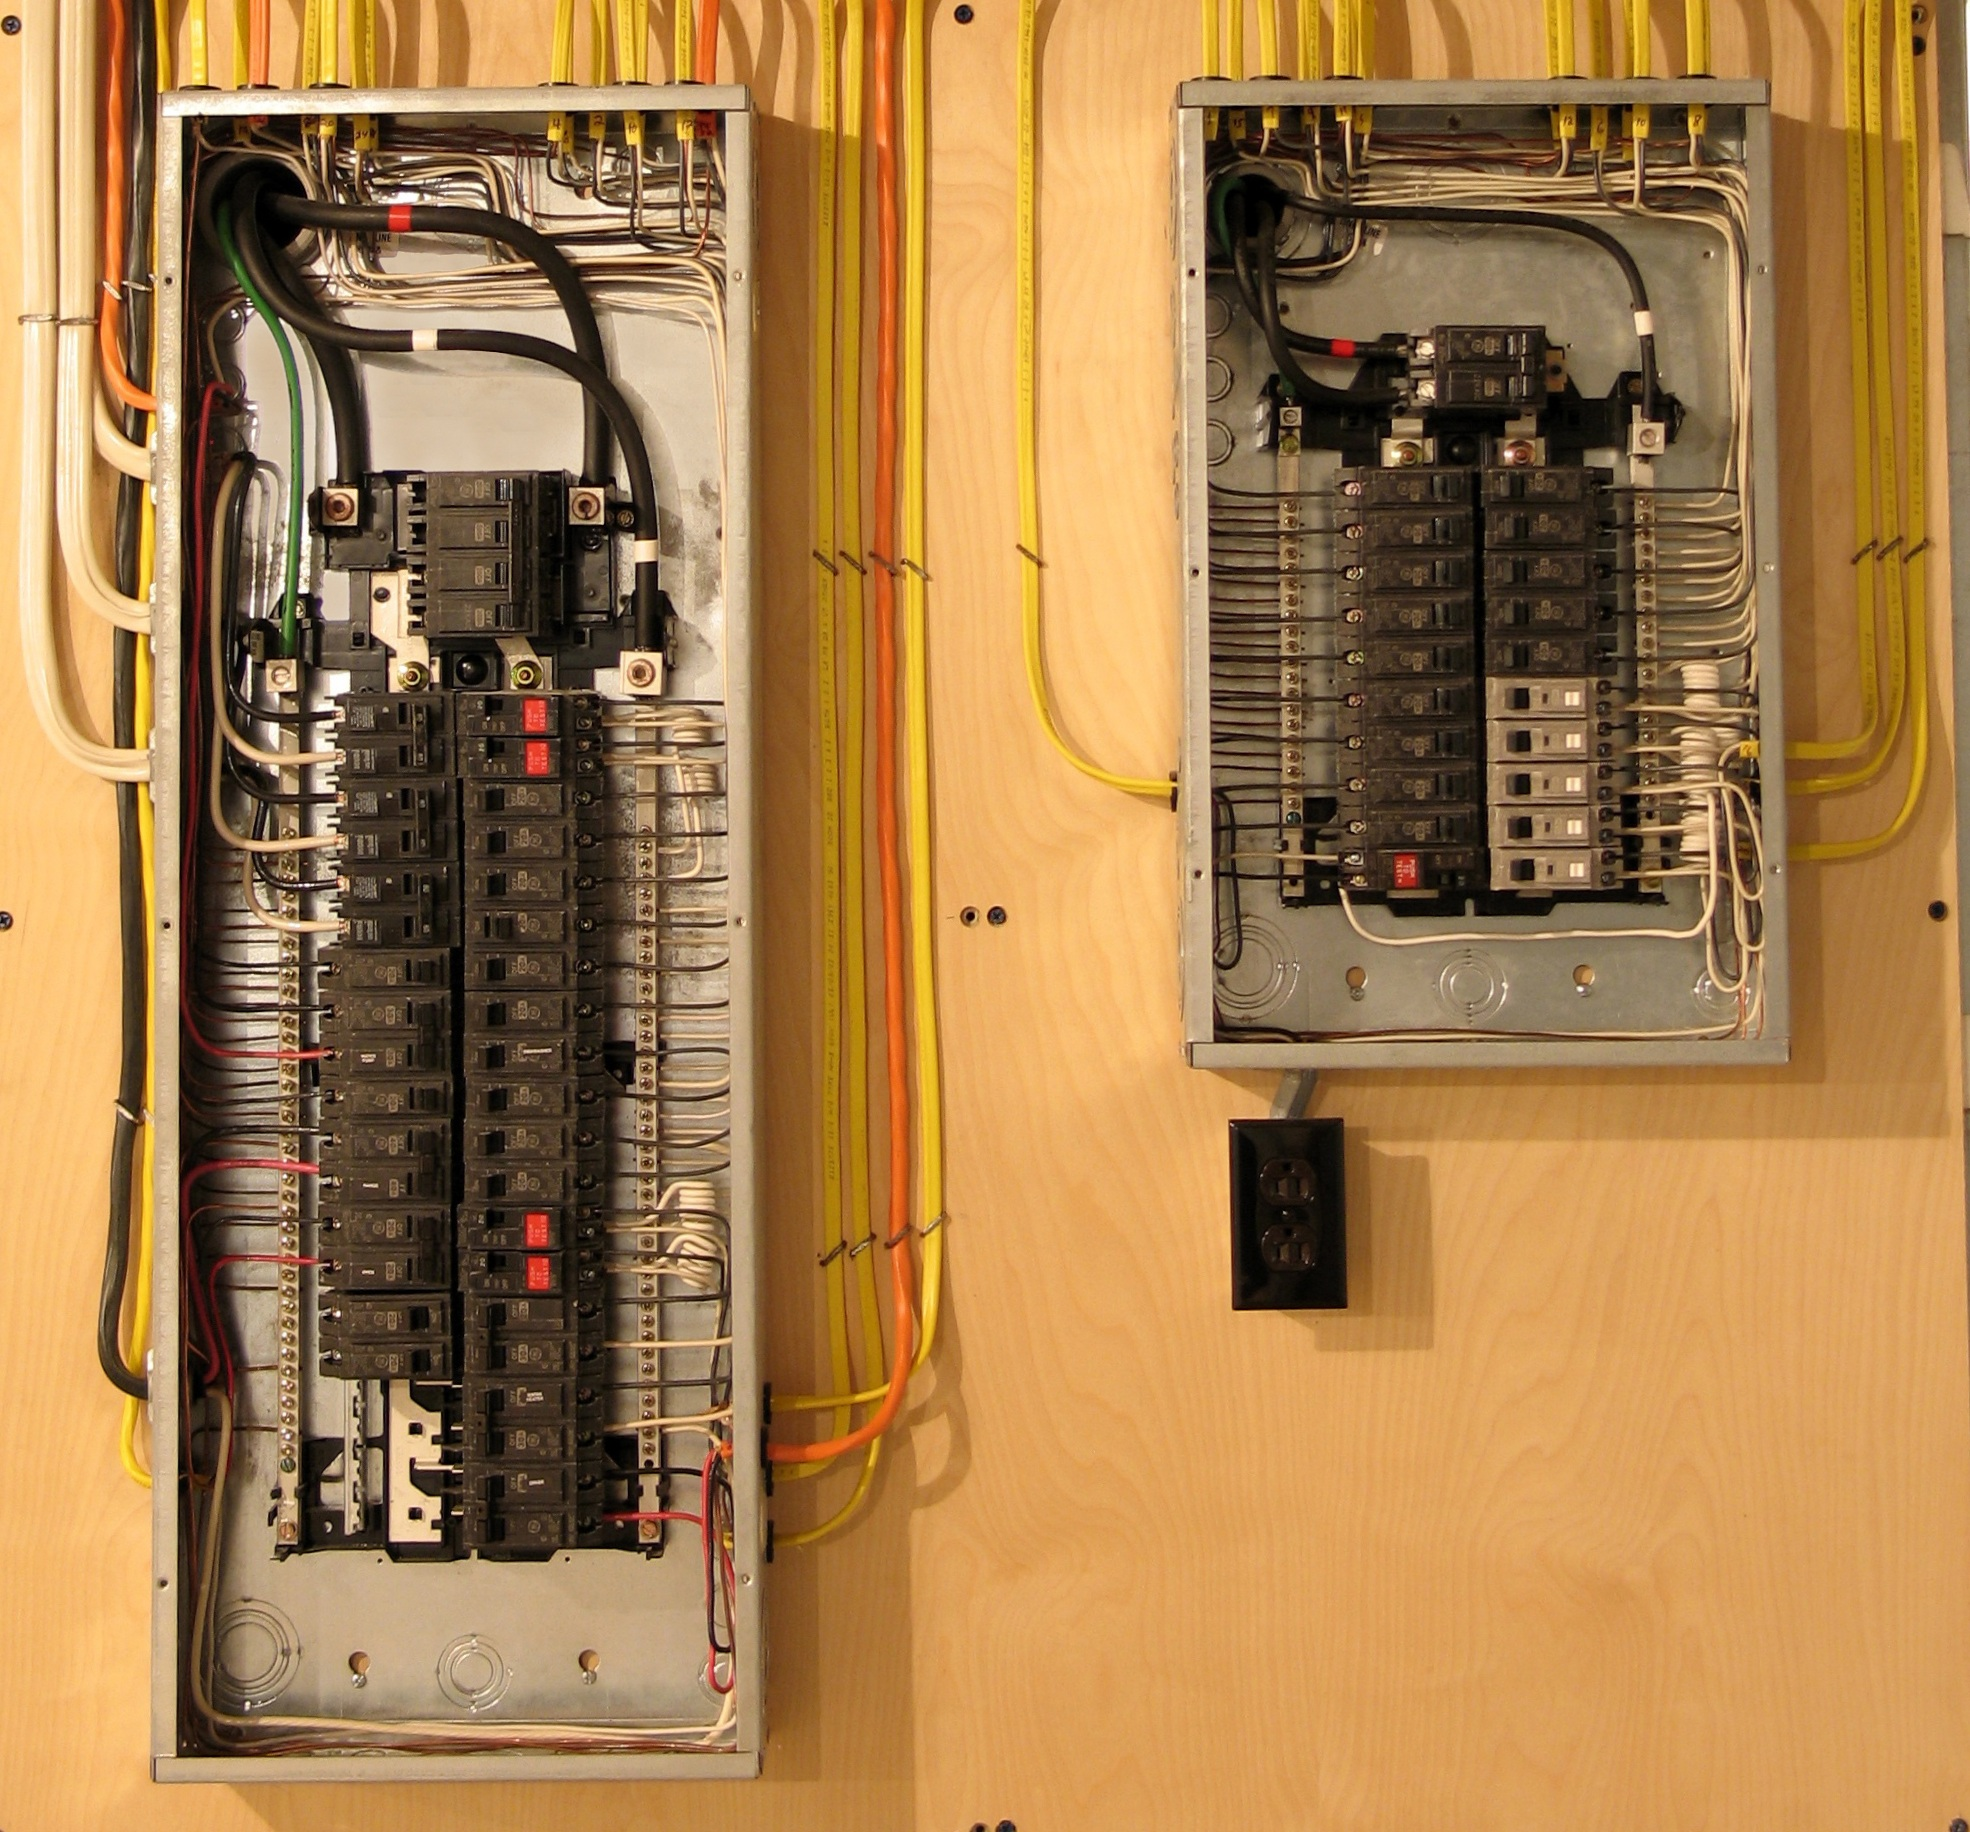 electrical service change - electrical panel change electrician fort saskatchewan alberta - electrical panel change electrician sherwood park alberta -electrical panel change electrician st. albert alberta